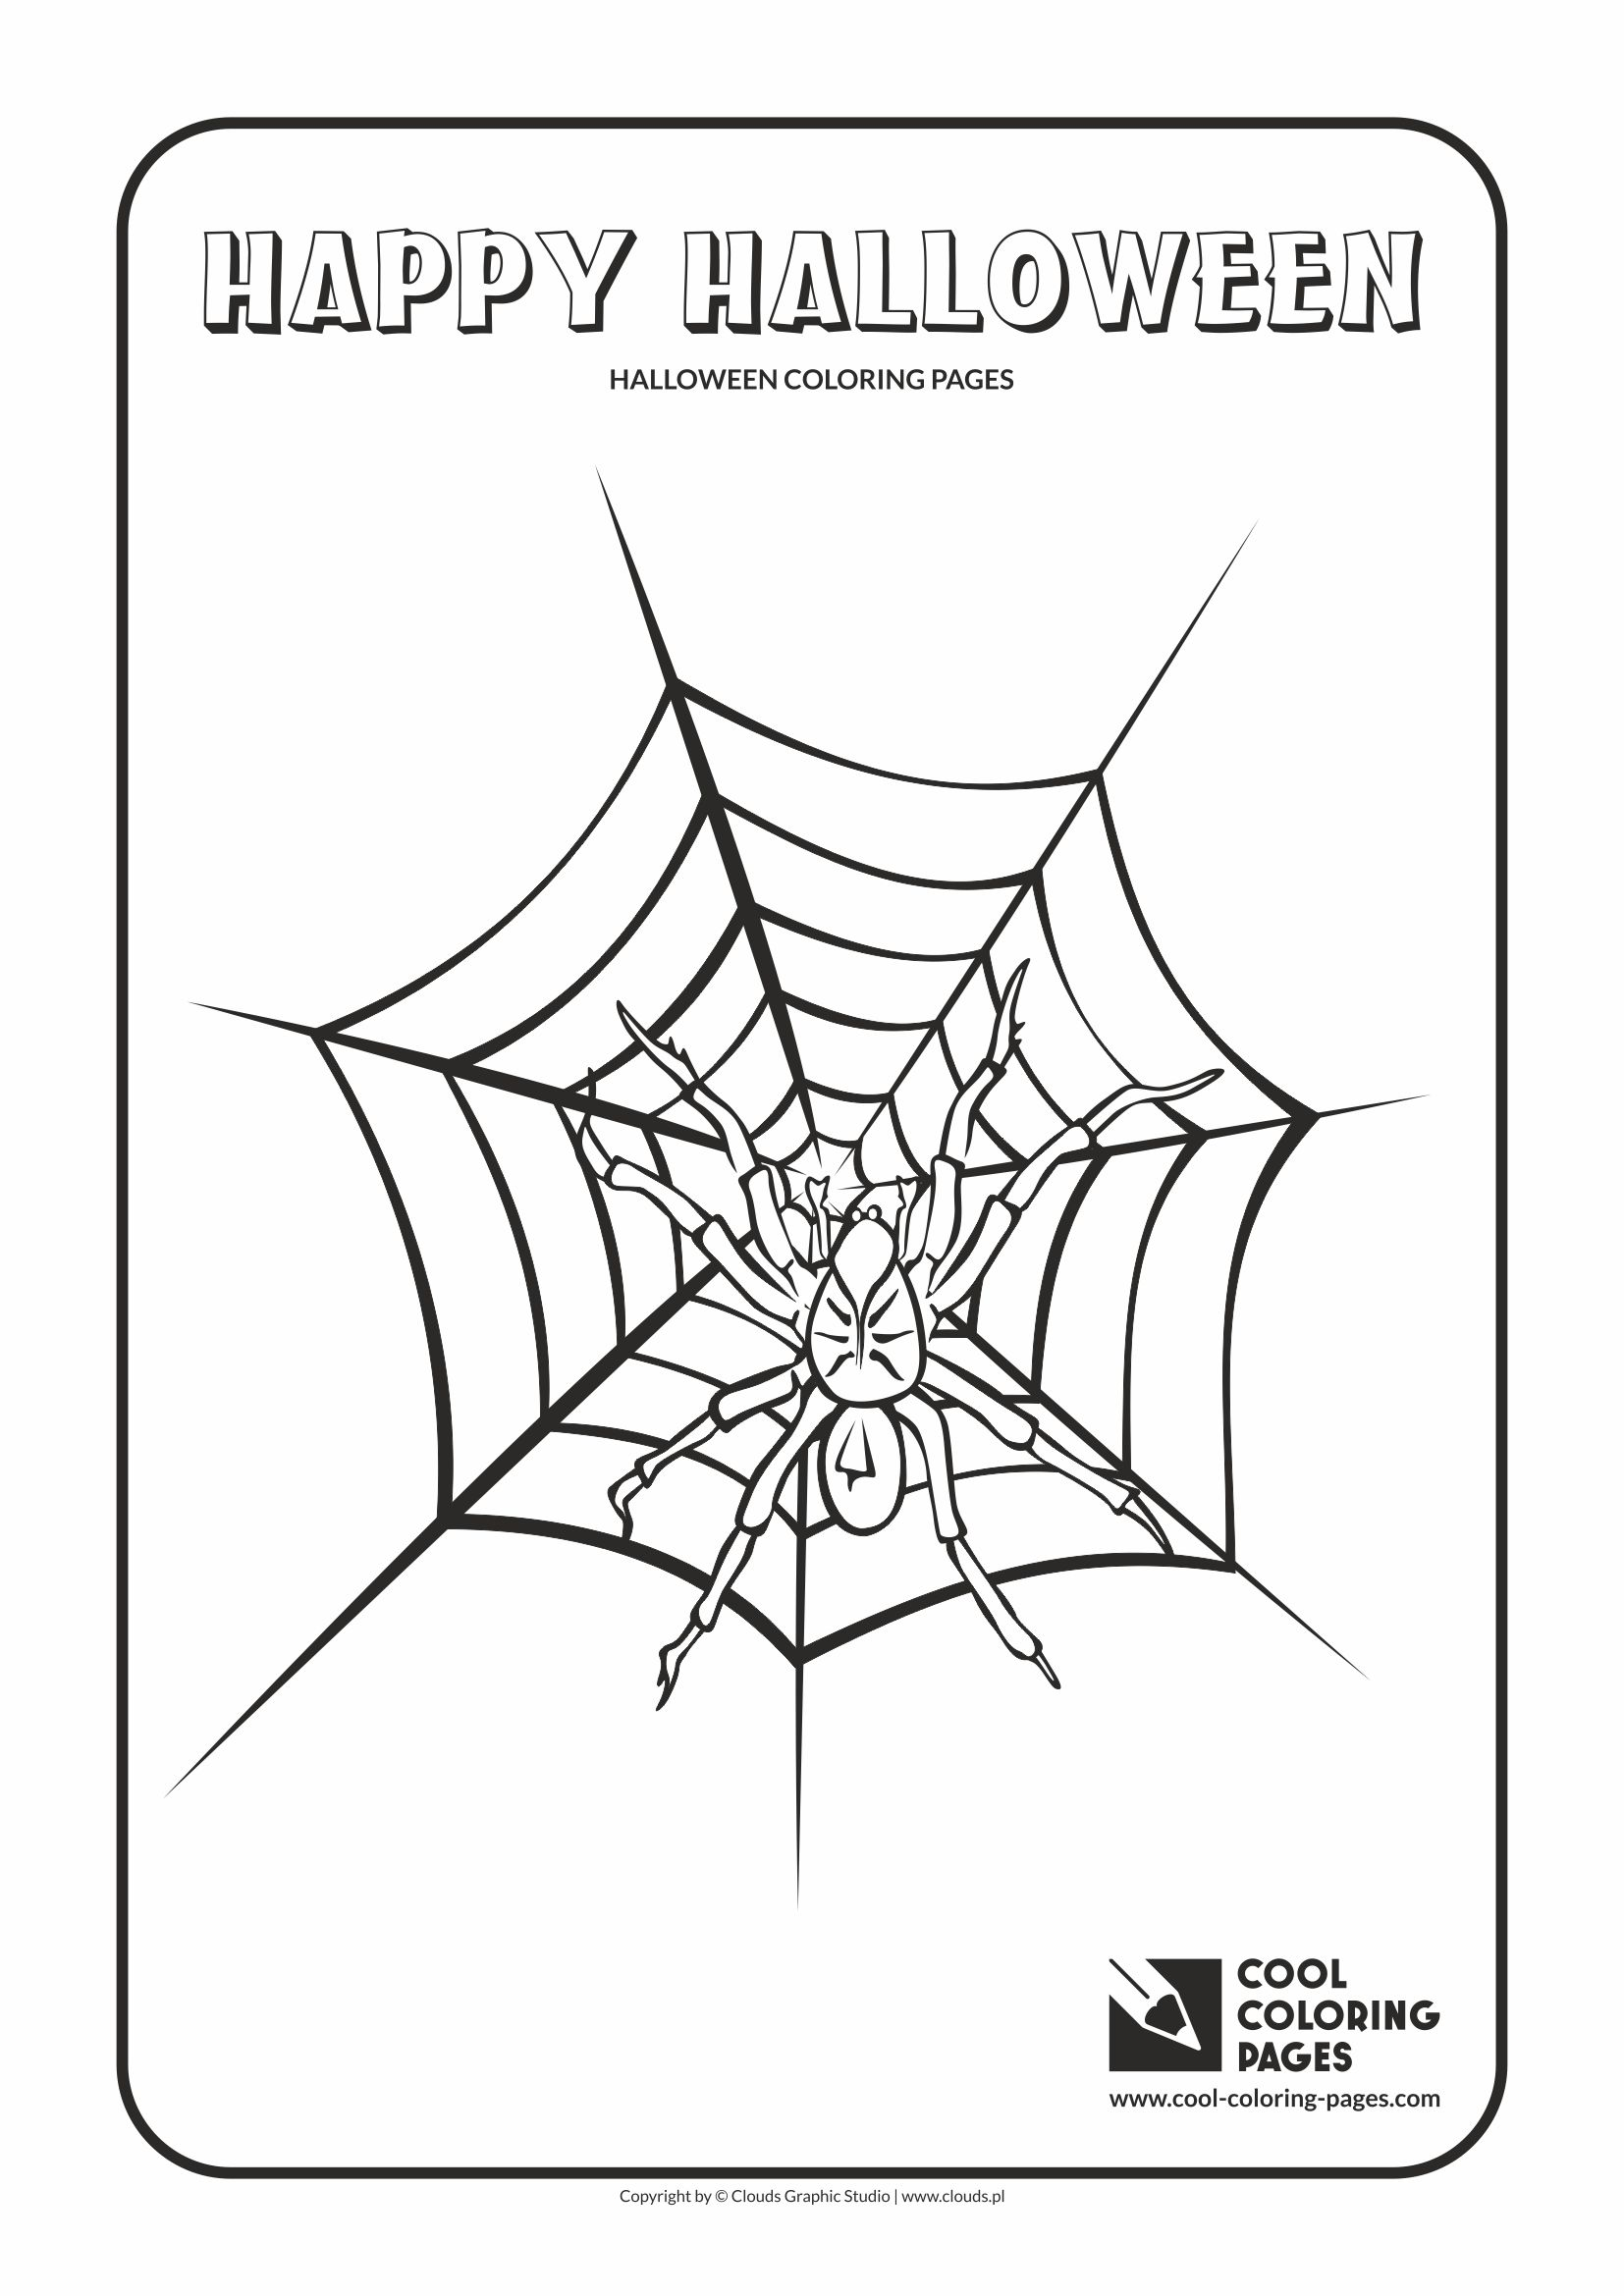 Uncategorized Coloring Pages Cool cool coloring pages holidays halloween spider page with spider